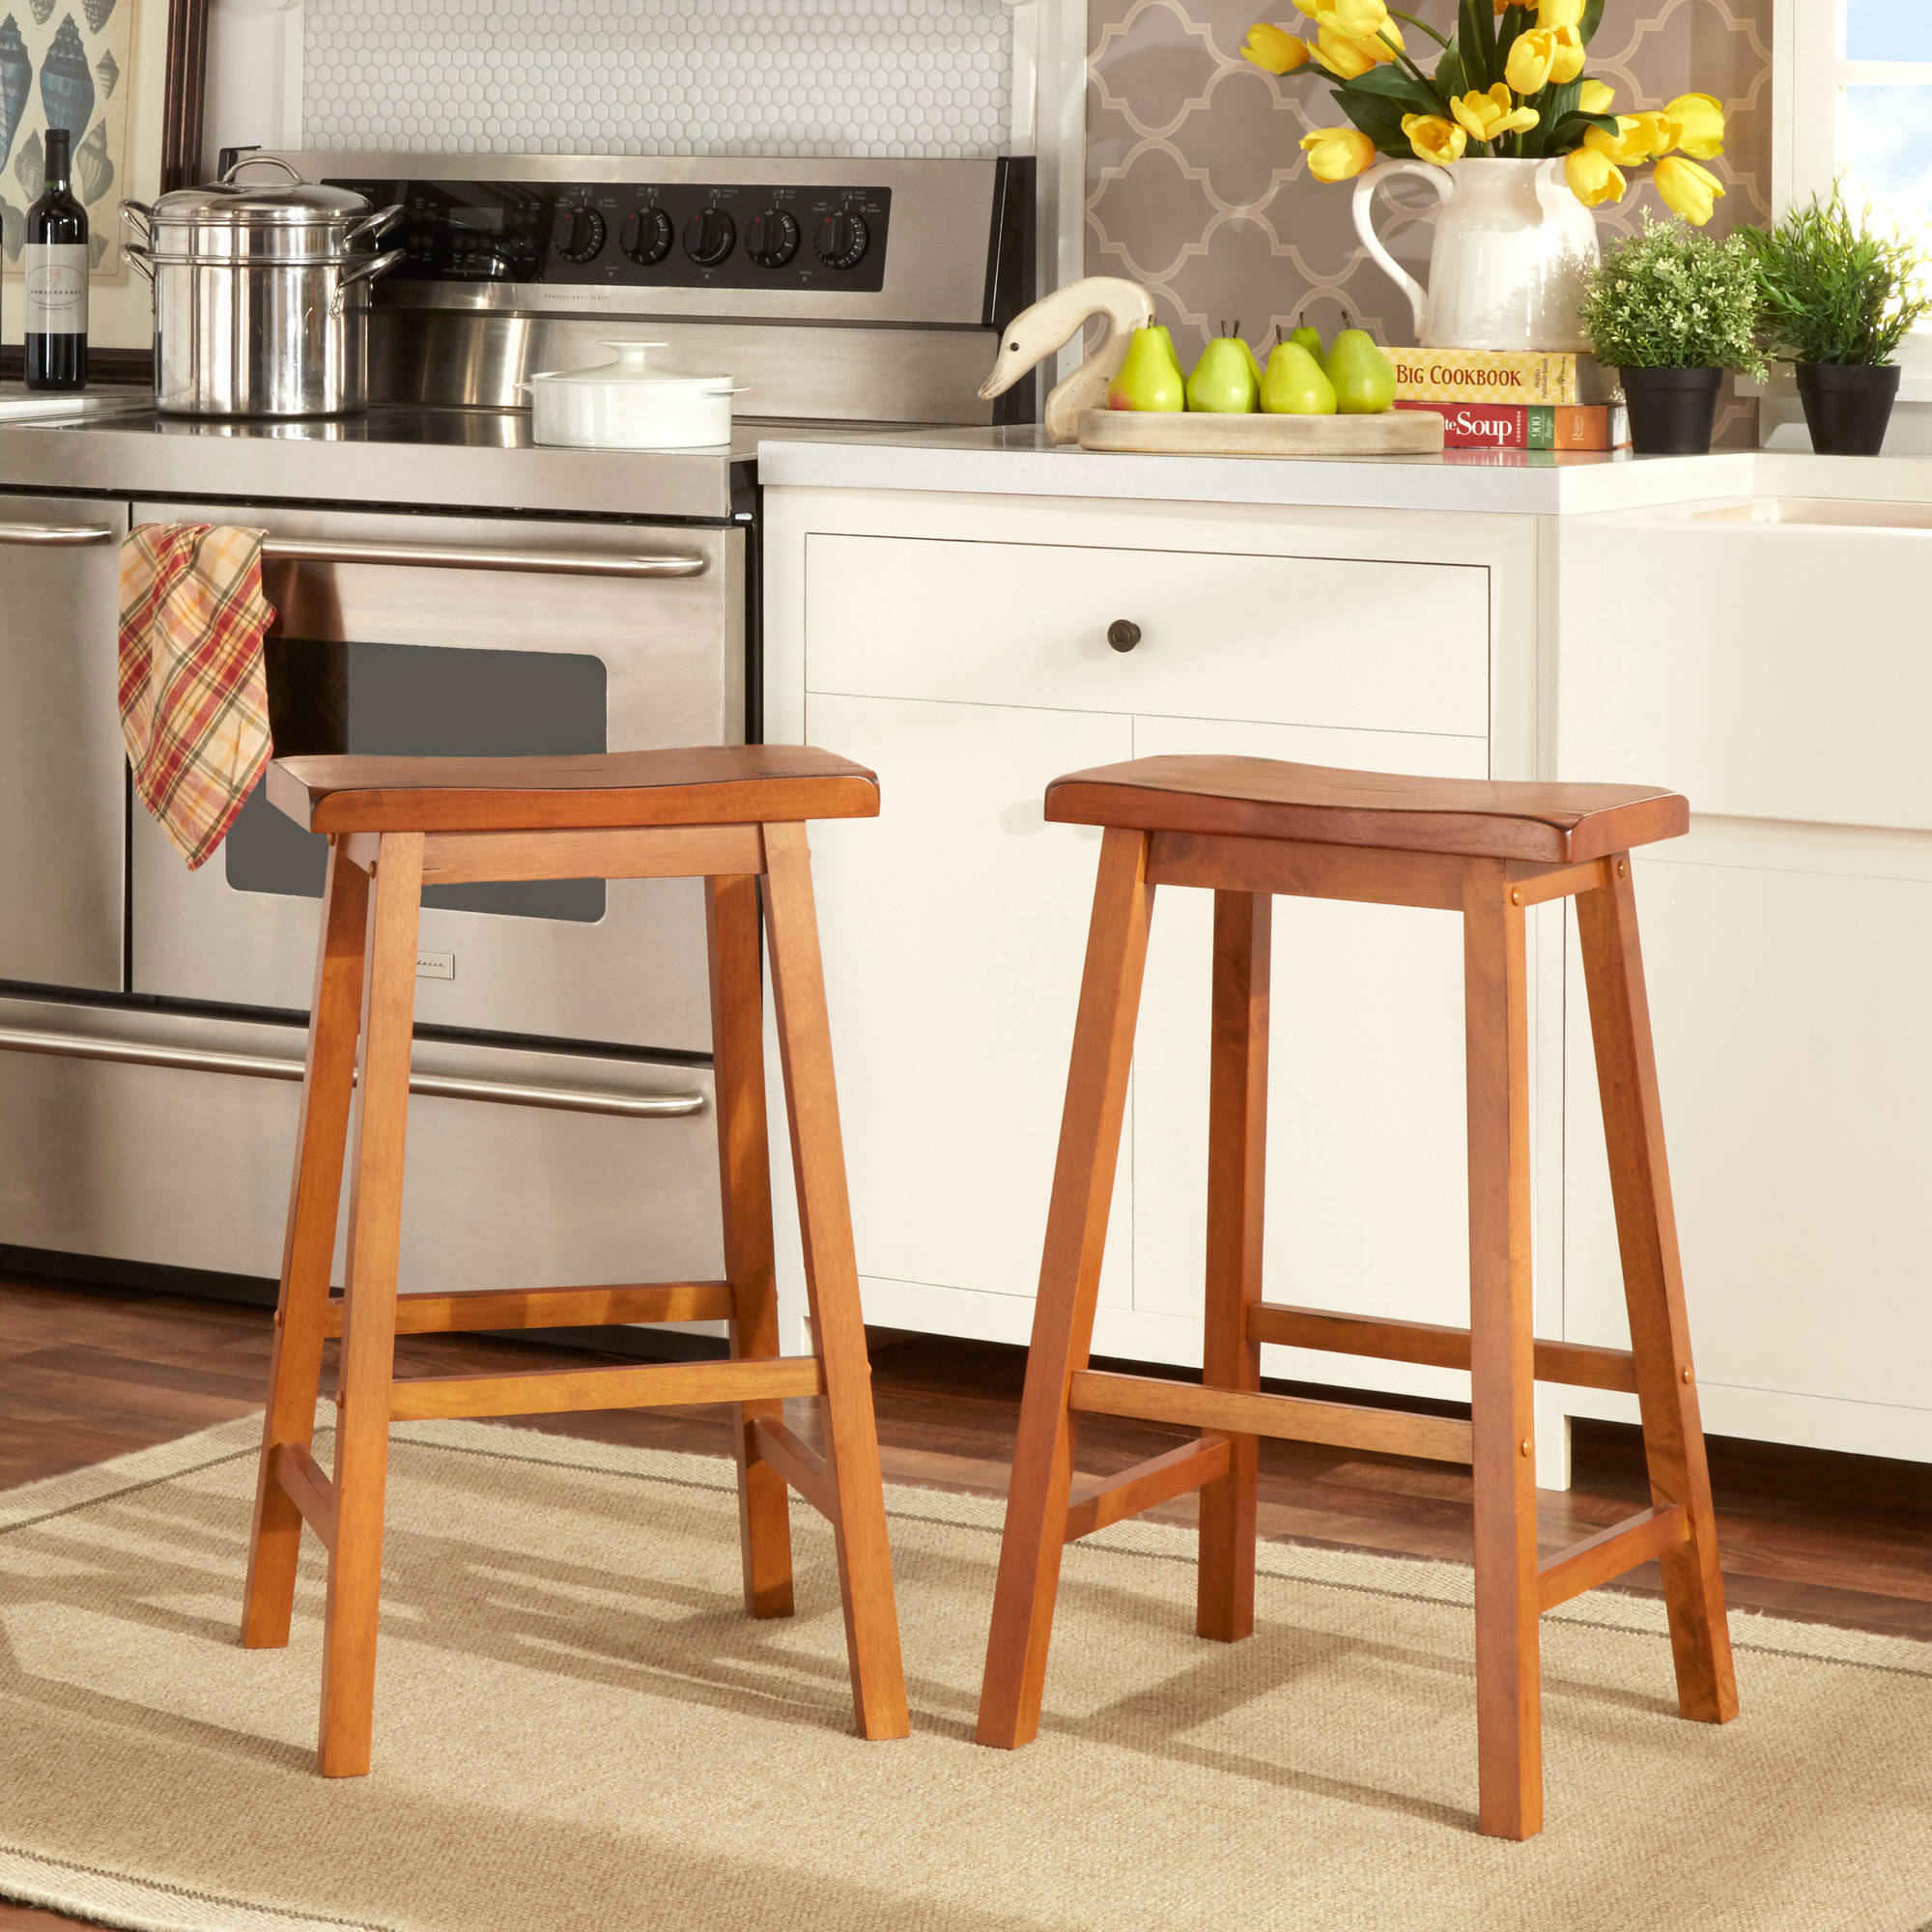 Ashby Bar Stools 29 Set Of 2 Oak Walmart Com